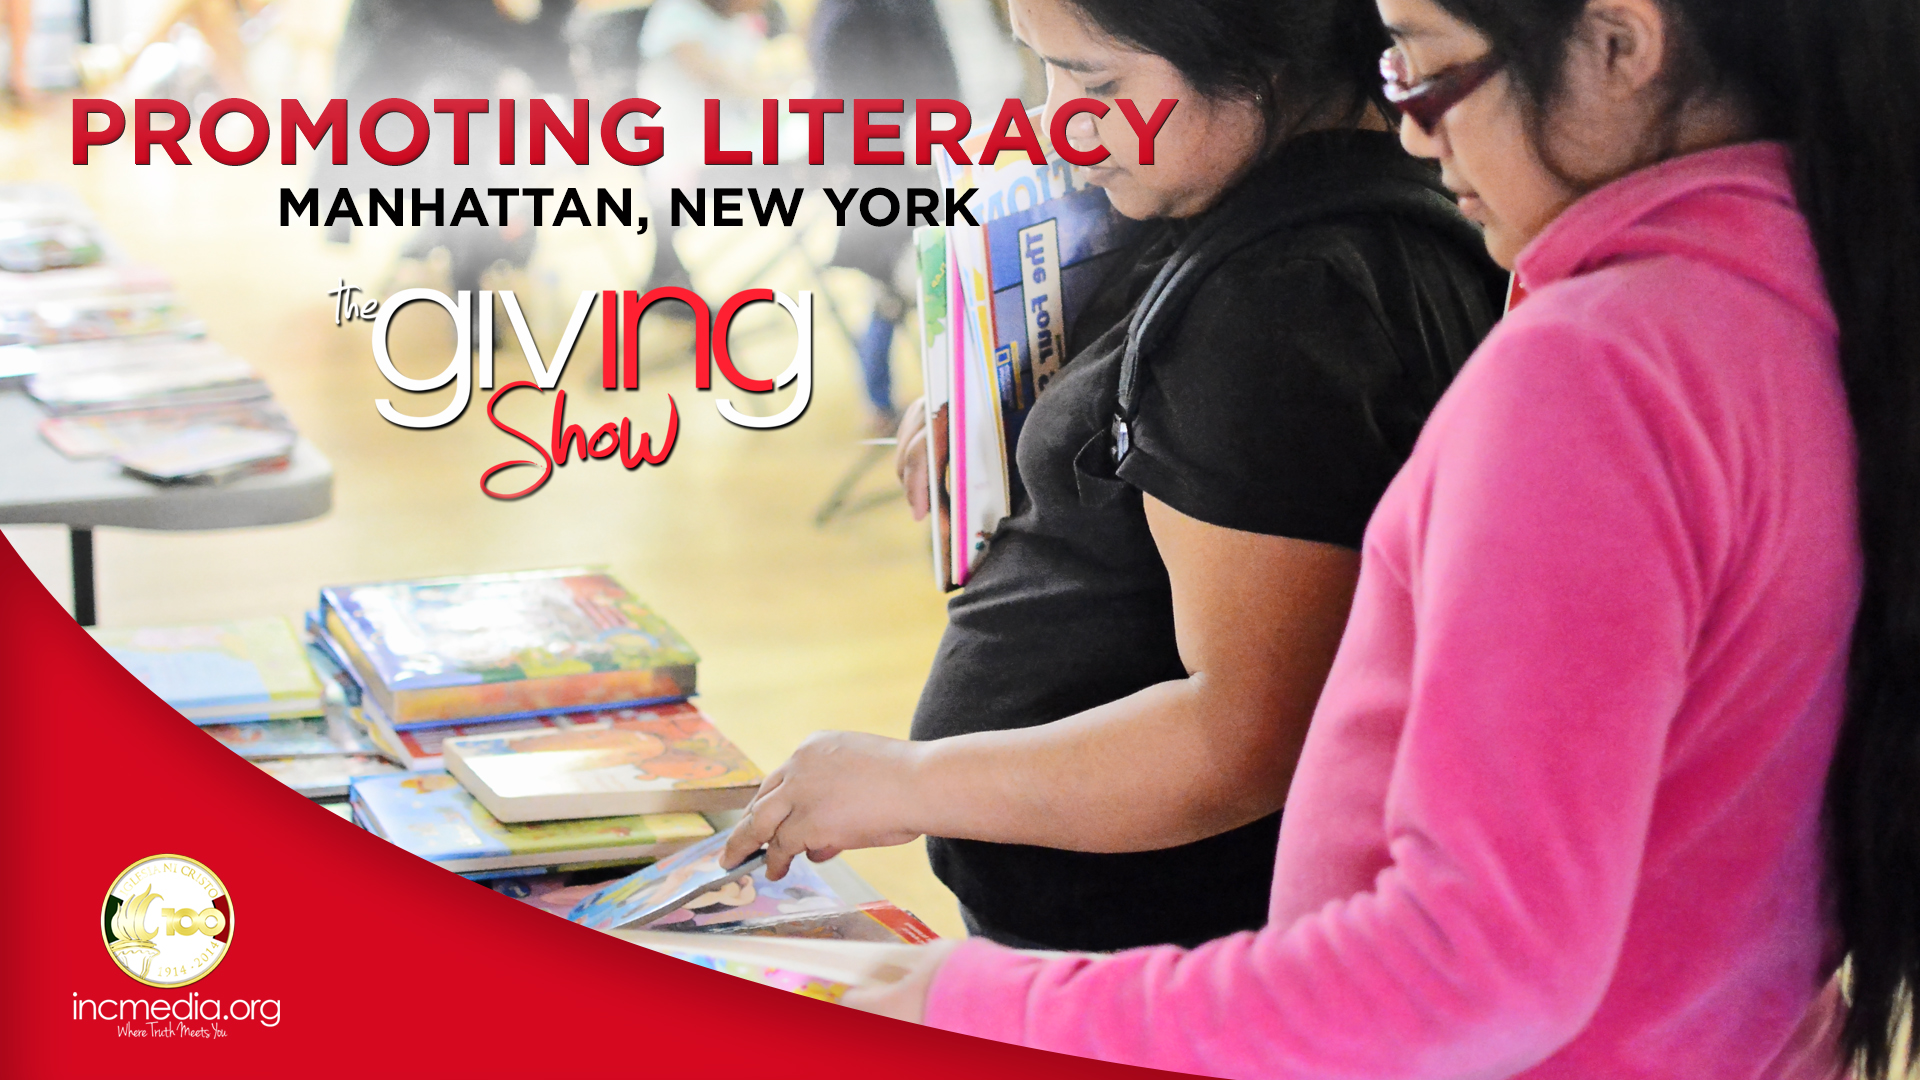 Encouraging Literacy in Manhattan, New York